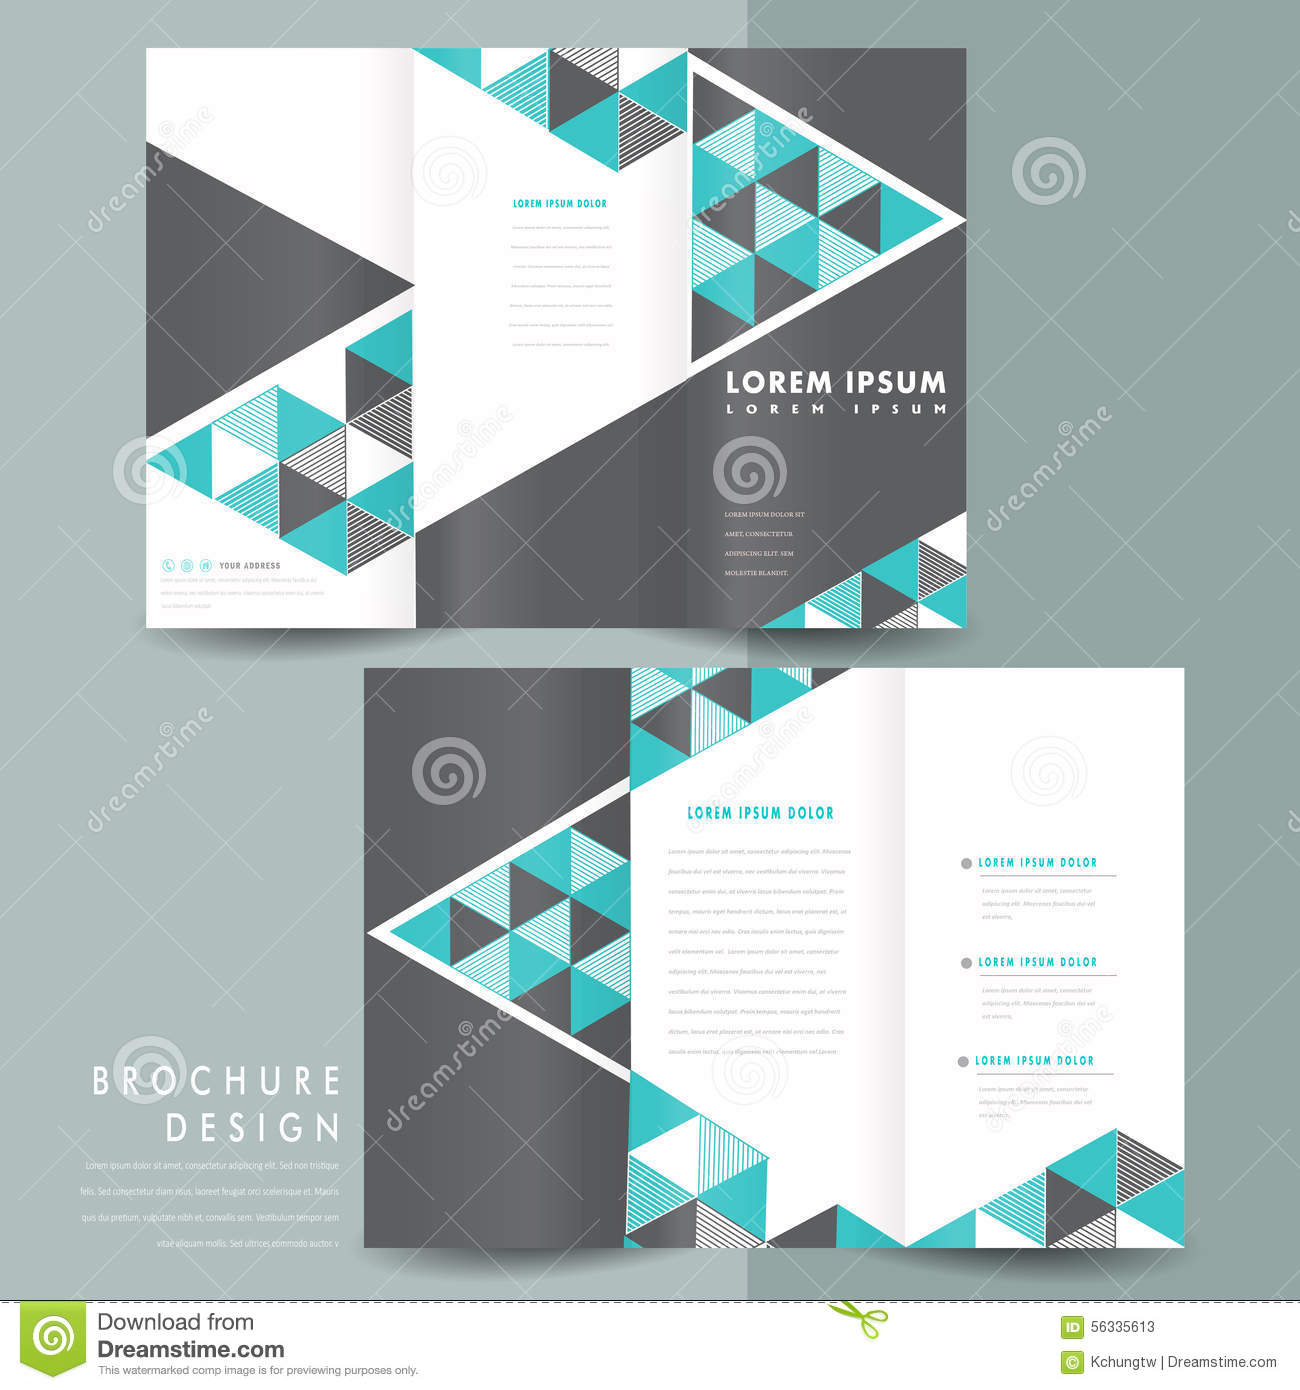 100 brochure design templates cdr format free download tri brochure design templates cdr format free download template brochure 100 images free brochure templates exles 20 pronofoot35fo Image collections